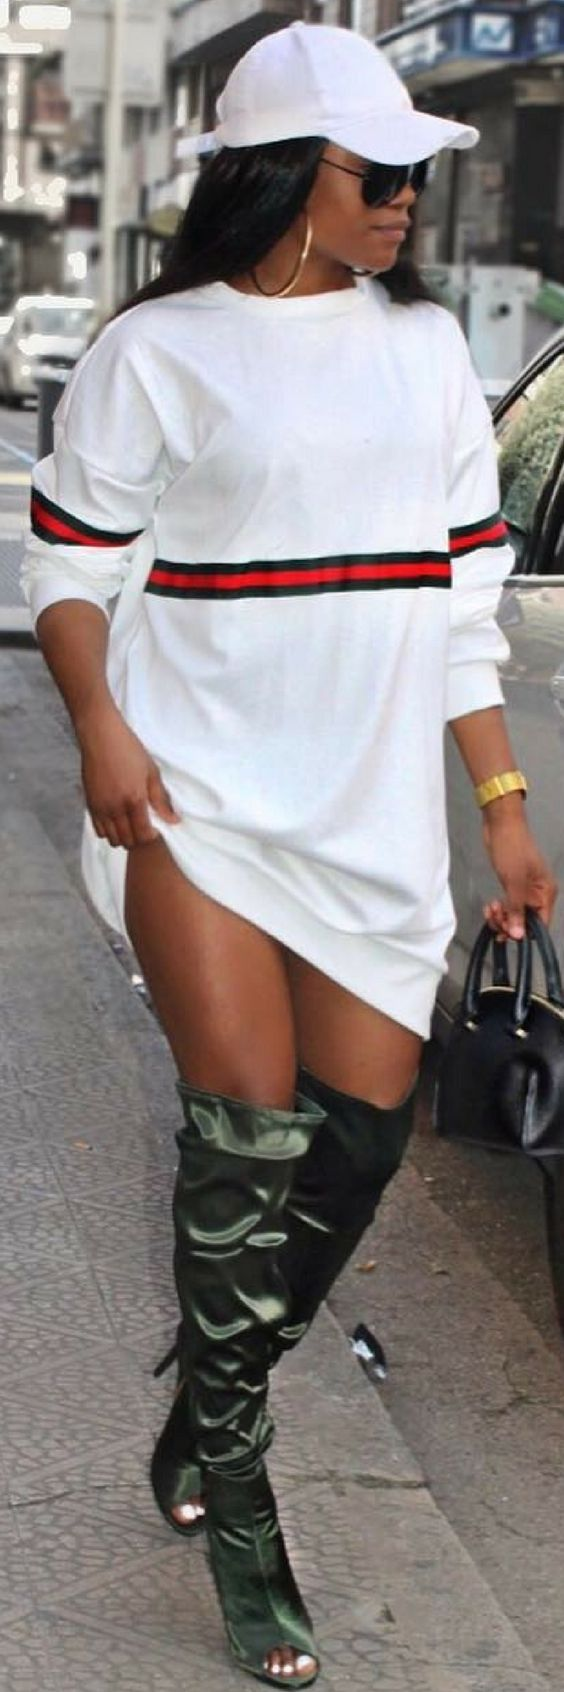 1 Of The Best Oversized Jumper Dresses You Need To Own http://ecstasymodels.blog/2017/10/30/1-best-oversized-jumper-dresses-need/